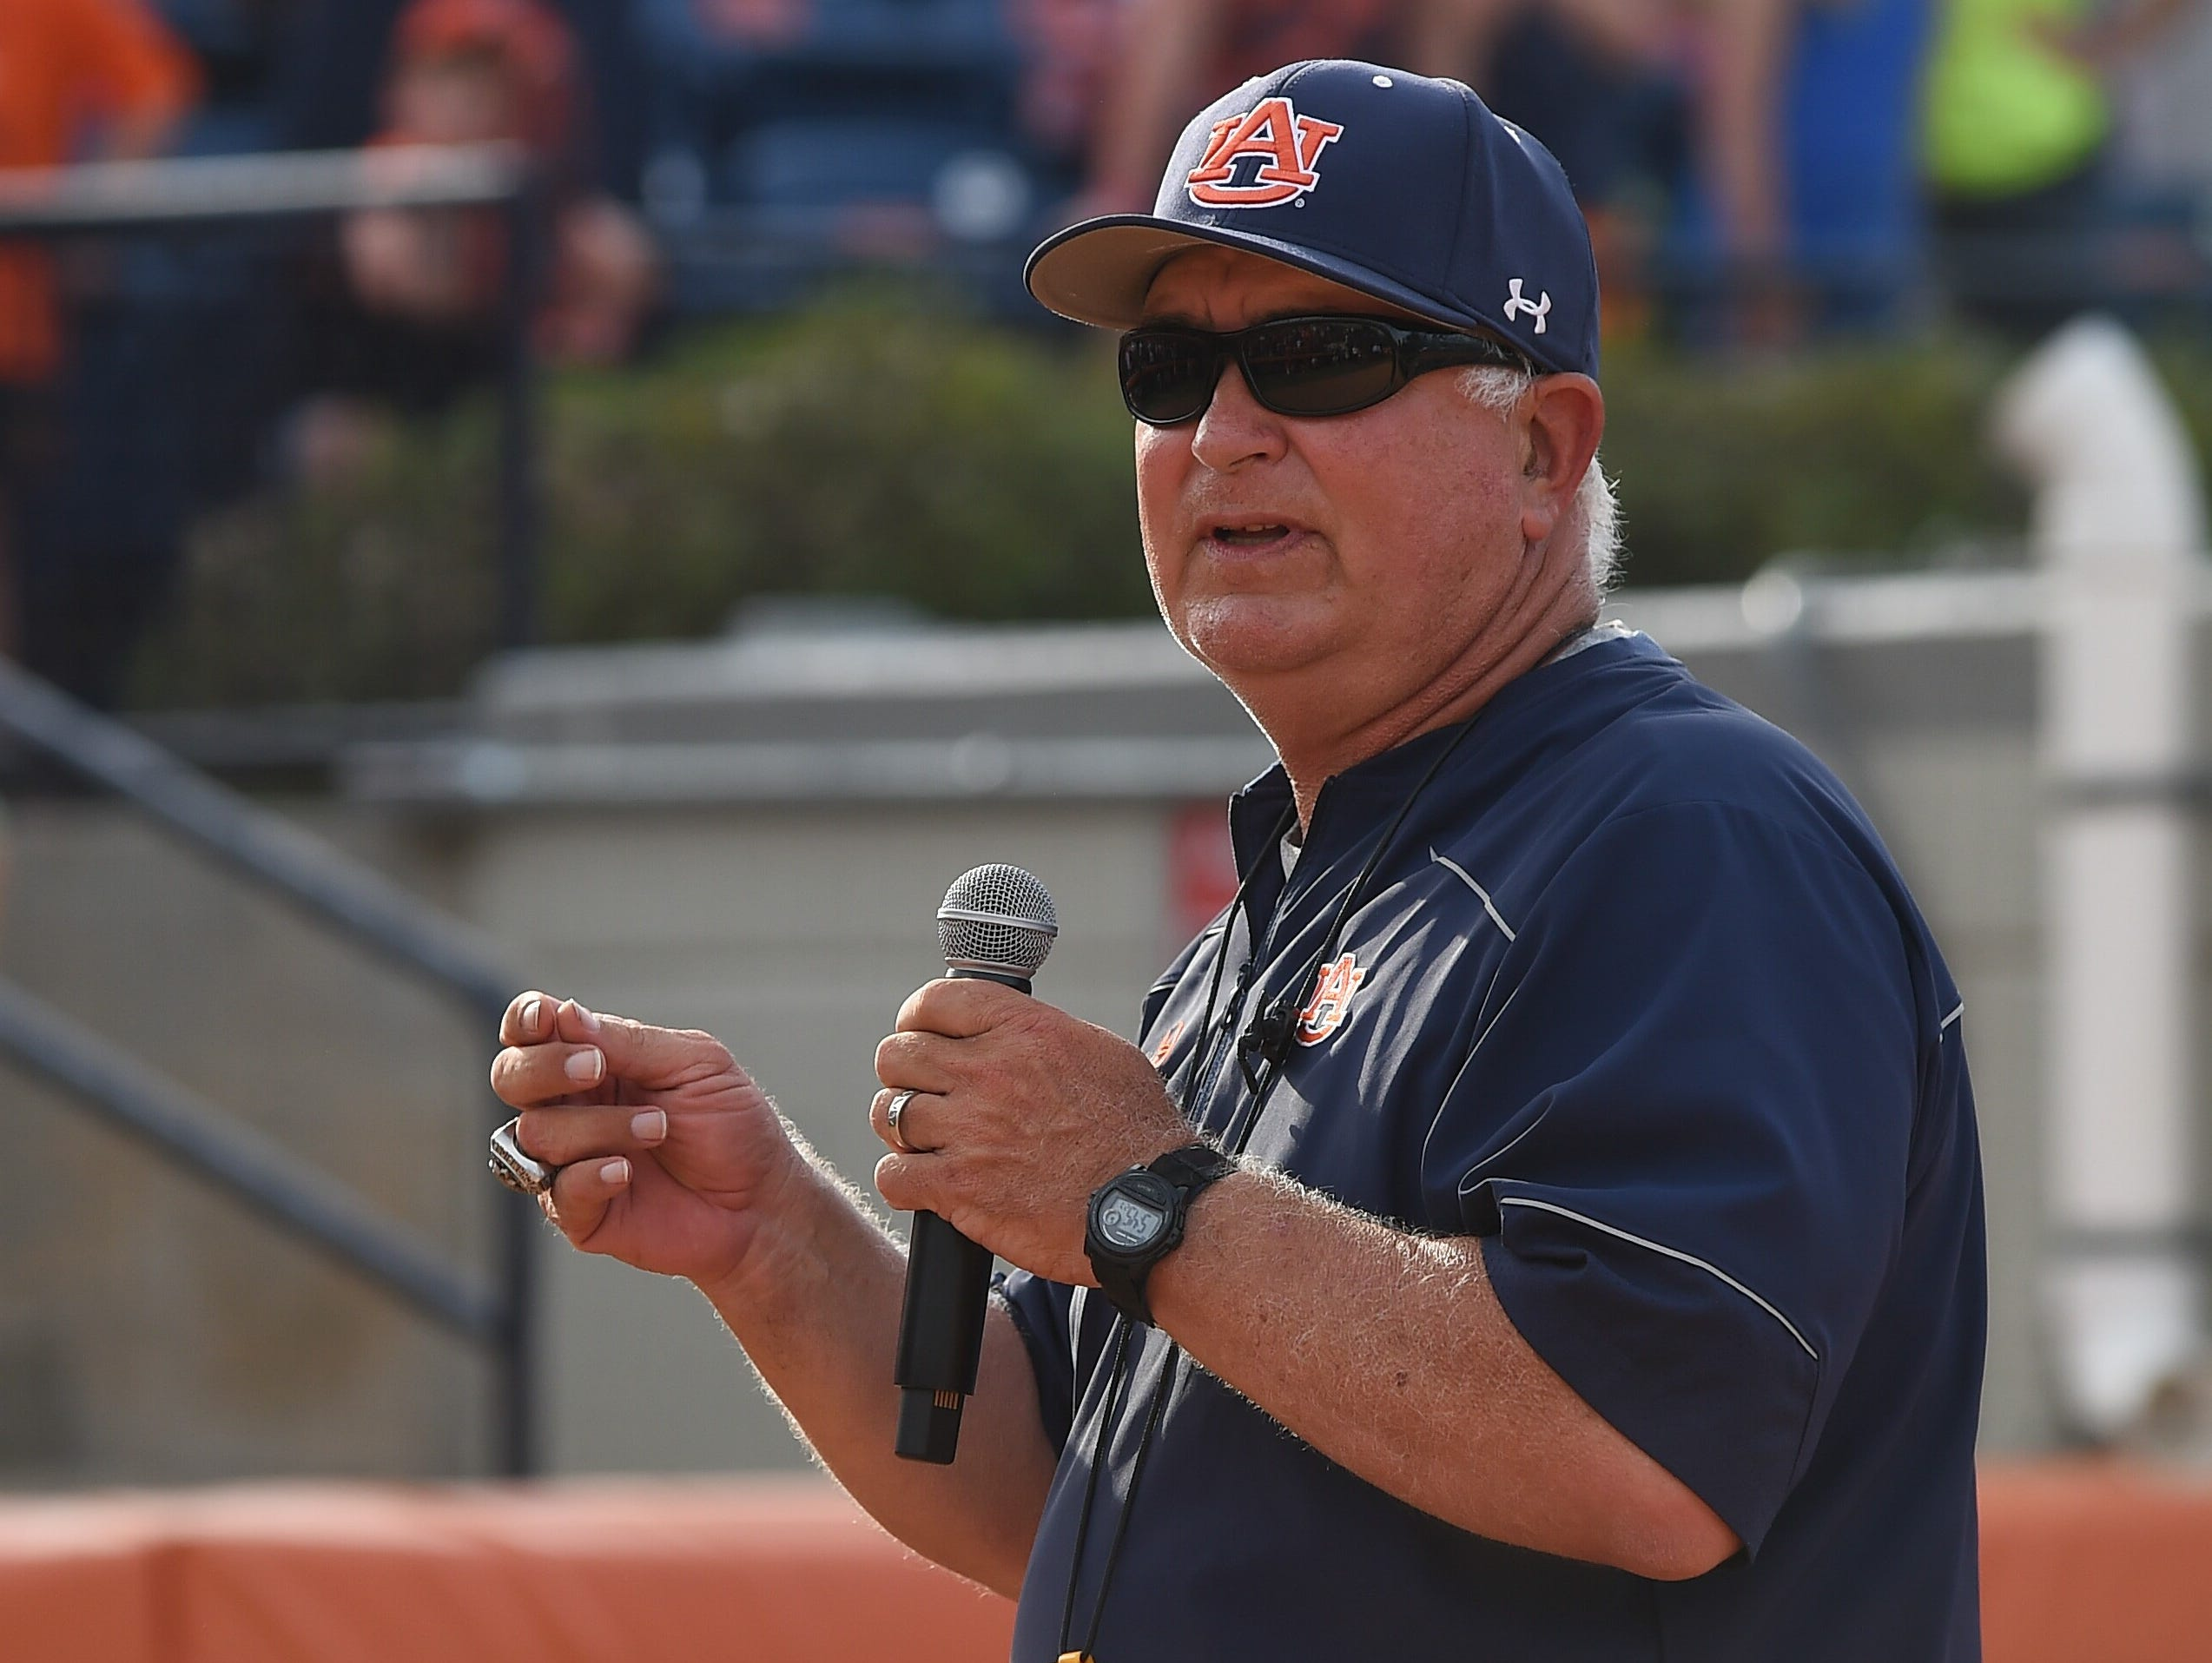 Auburn won 205 games in four years under former head coach Clint Myers, but now facing Title IX allegations related to Myers and his son, former Auburn assistant Corey Myers.